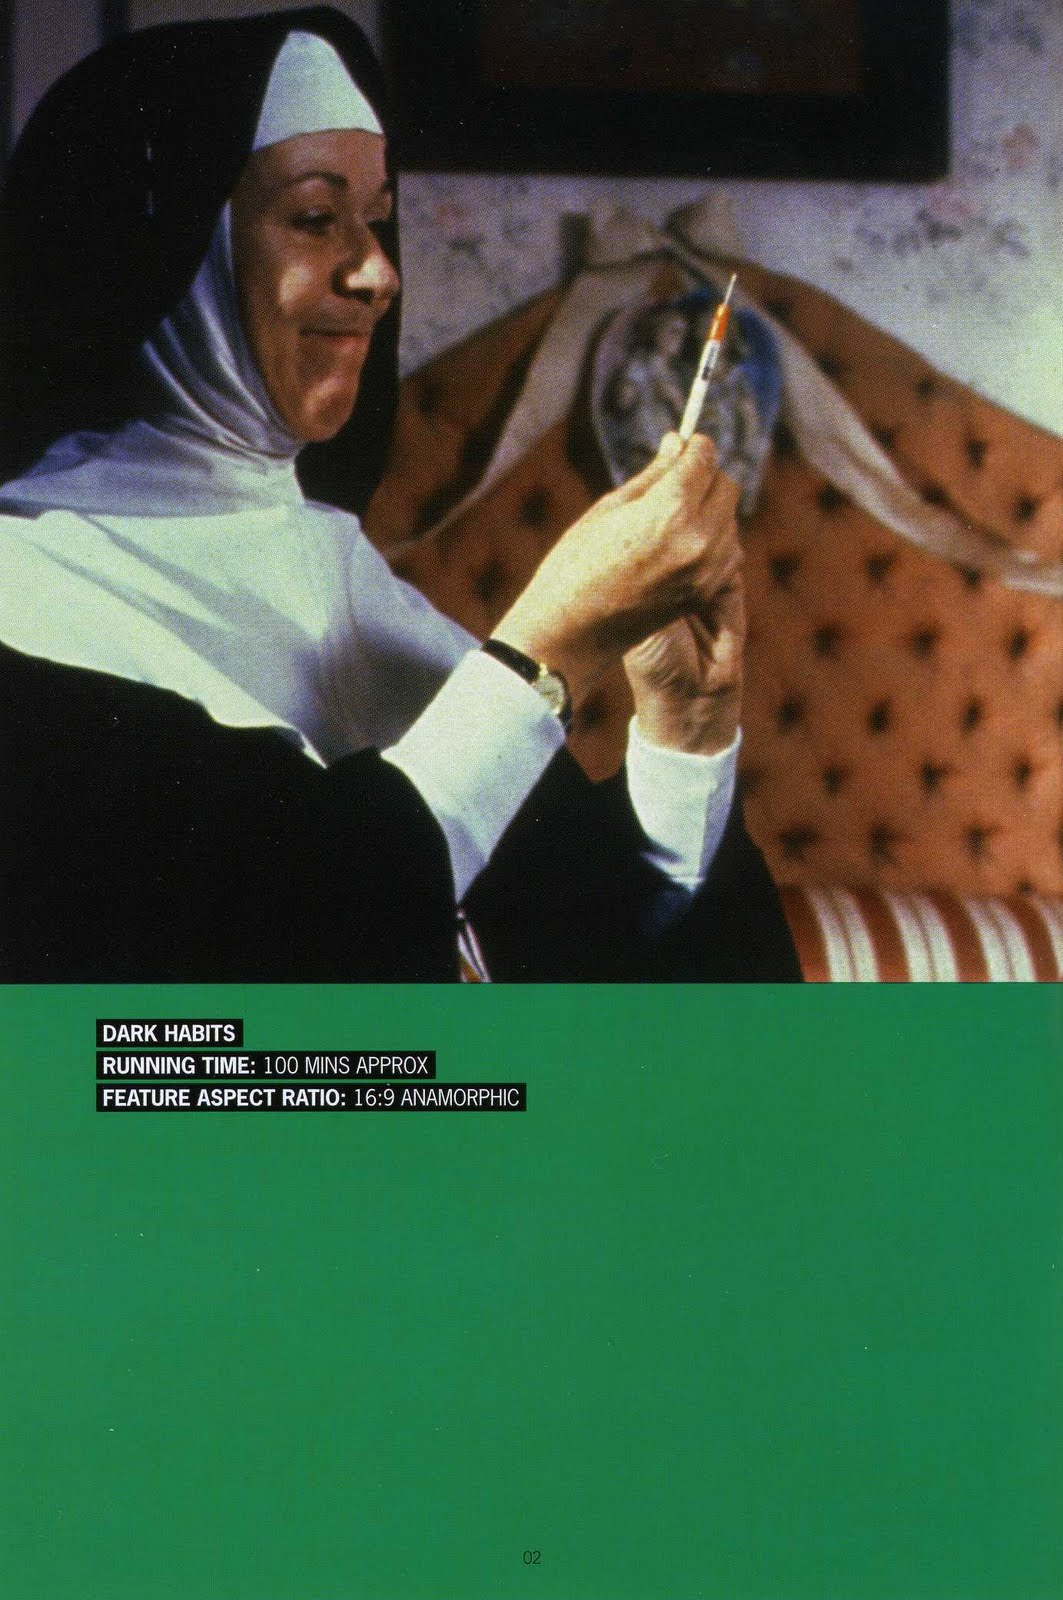 a scene analysis of dark habits a film by pedro almodovar This thesis considers the films of spanish director pedro almodóvar de pasiones, 1982), dark habits (entre ambivalent passion : pedro almodóvar's.